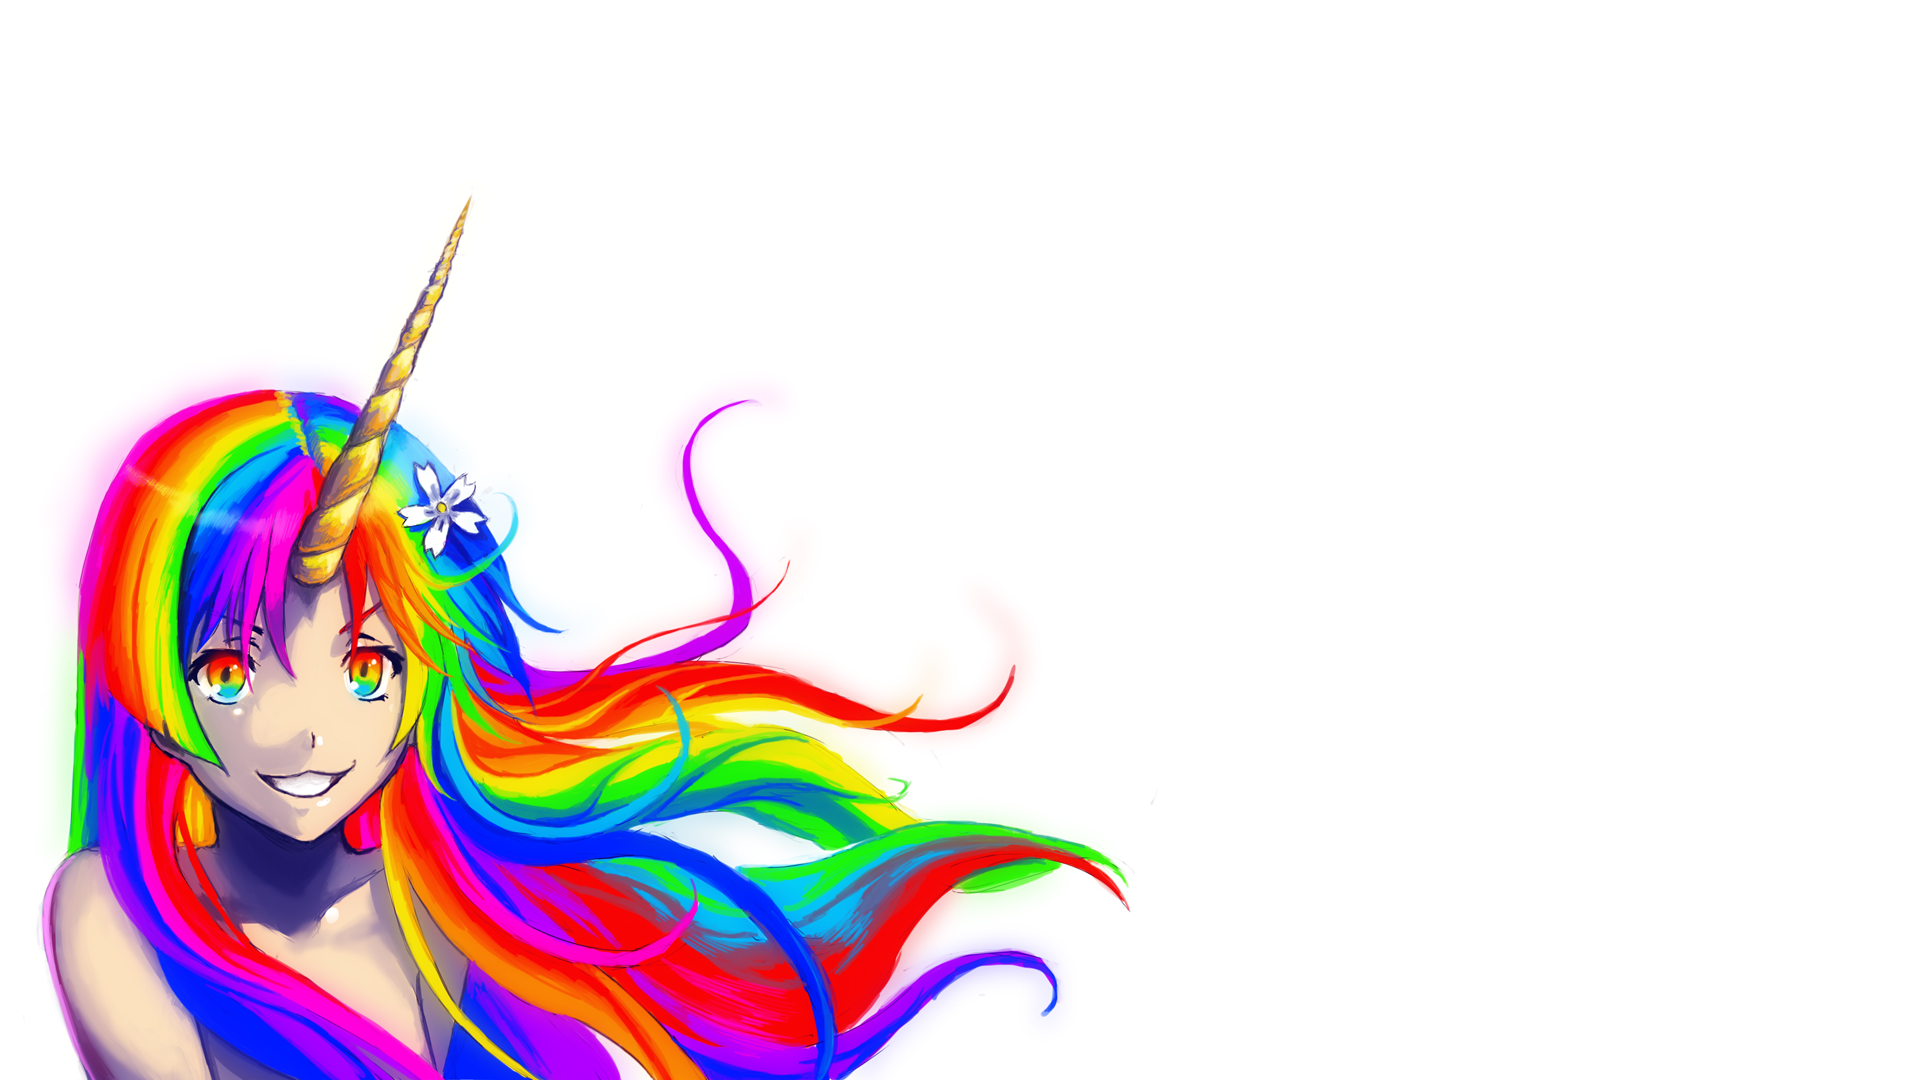 1920x1080 Unicorn Clipart Cute Anime